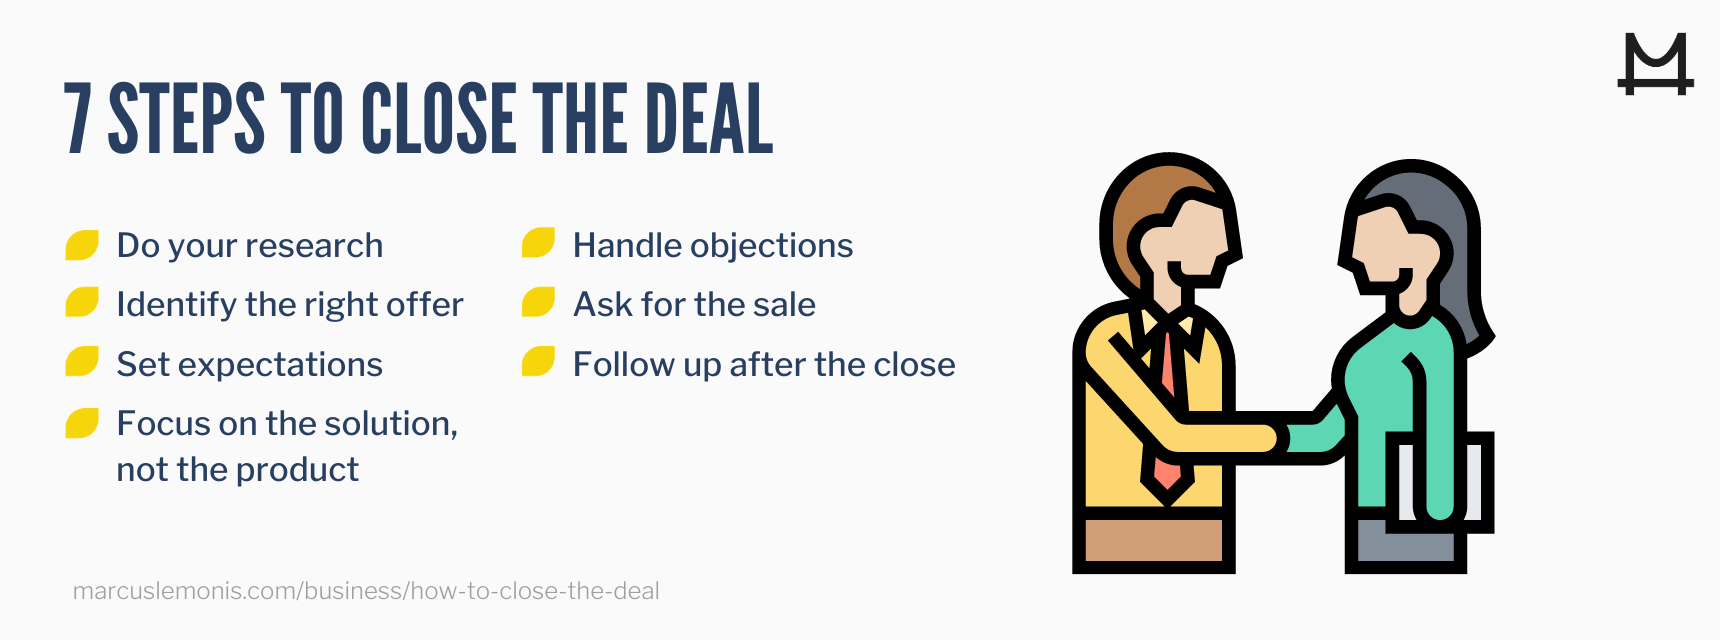 Seven steps on how to close the deal